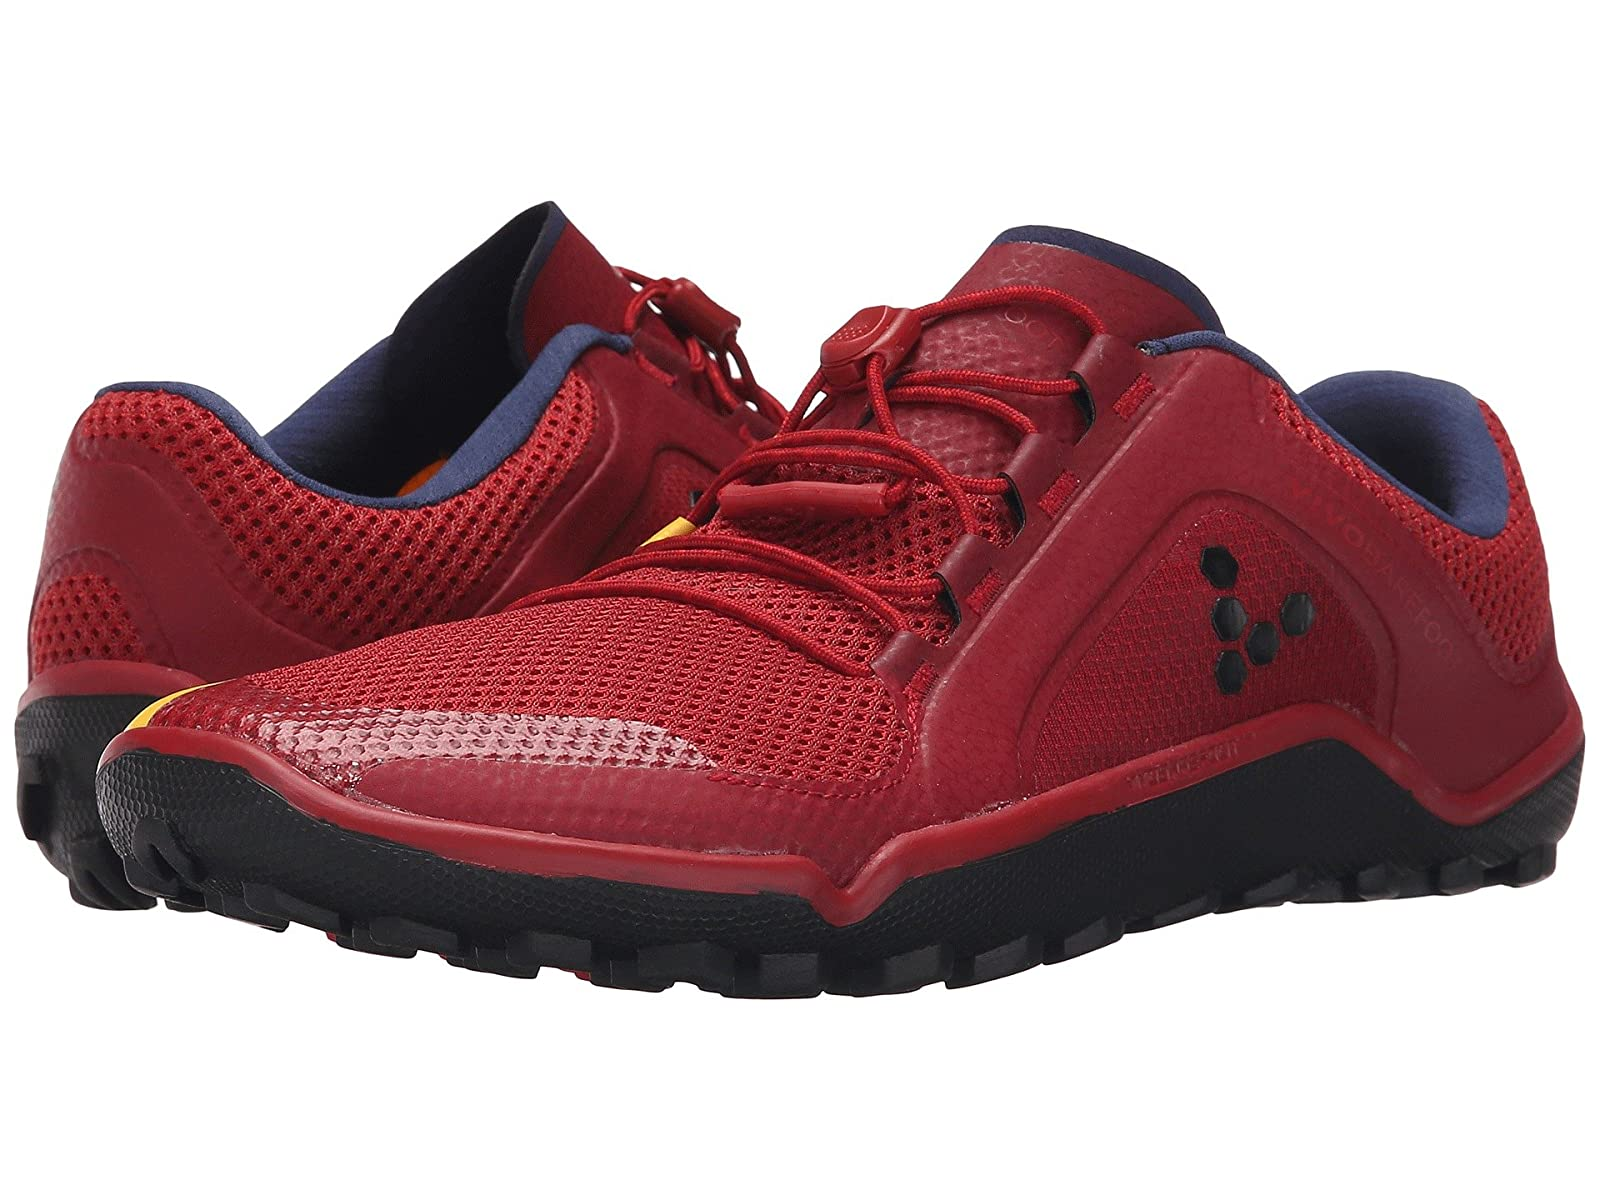 Vivobarefoot Primus TrailCheap and distinctive eye-catching shoes